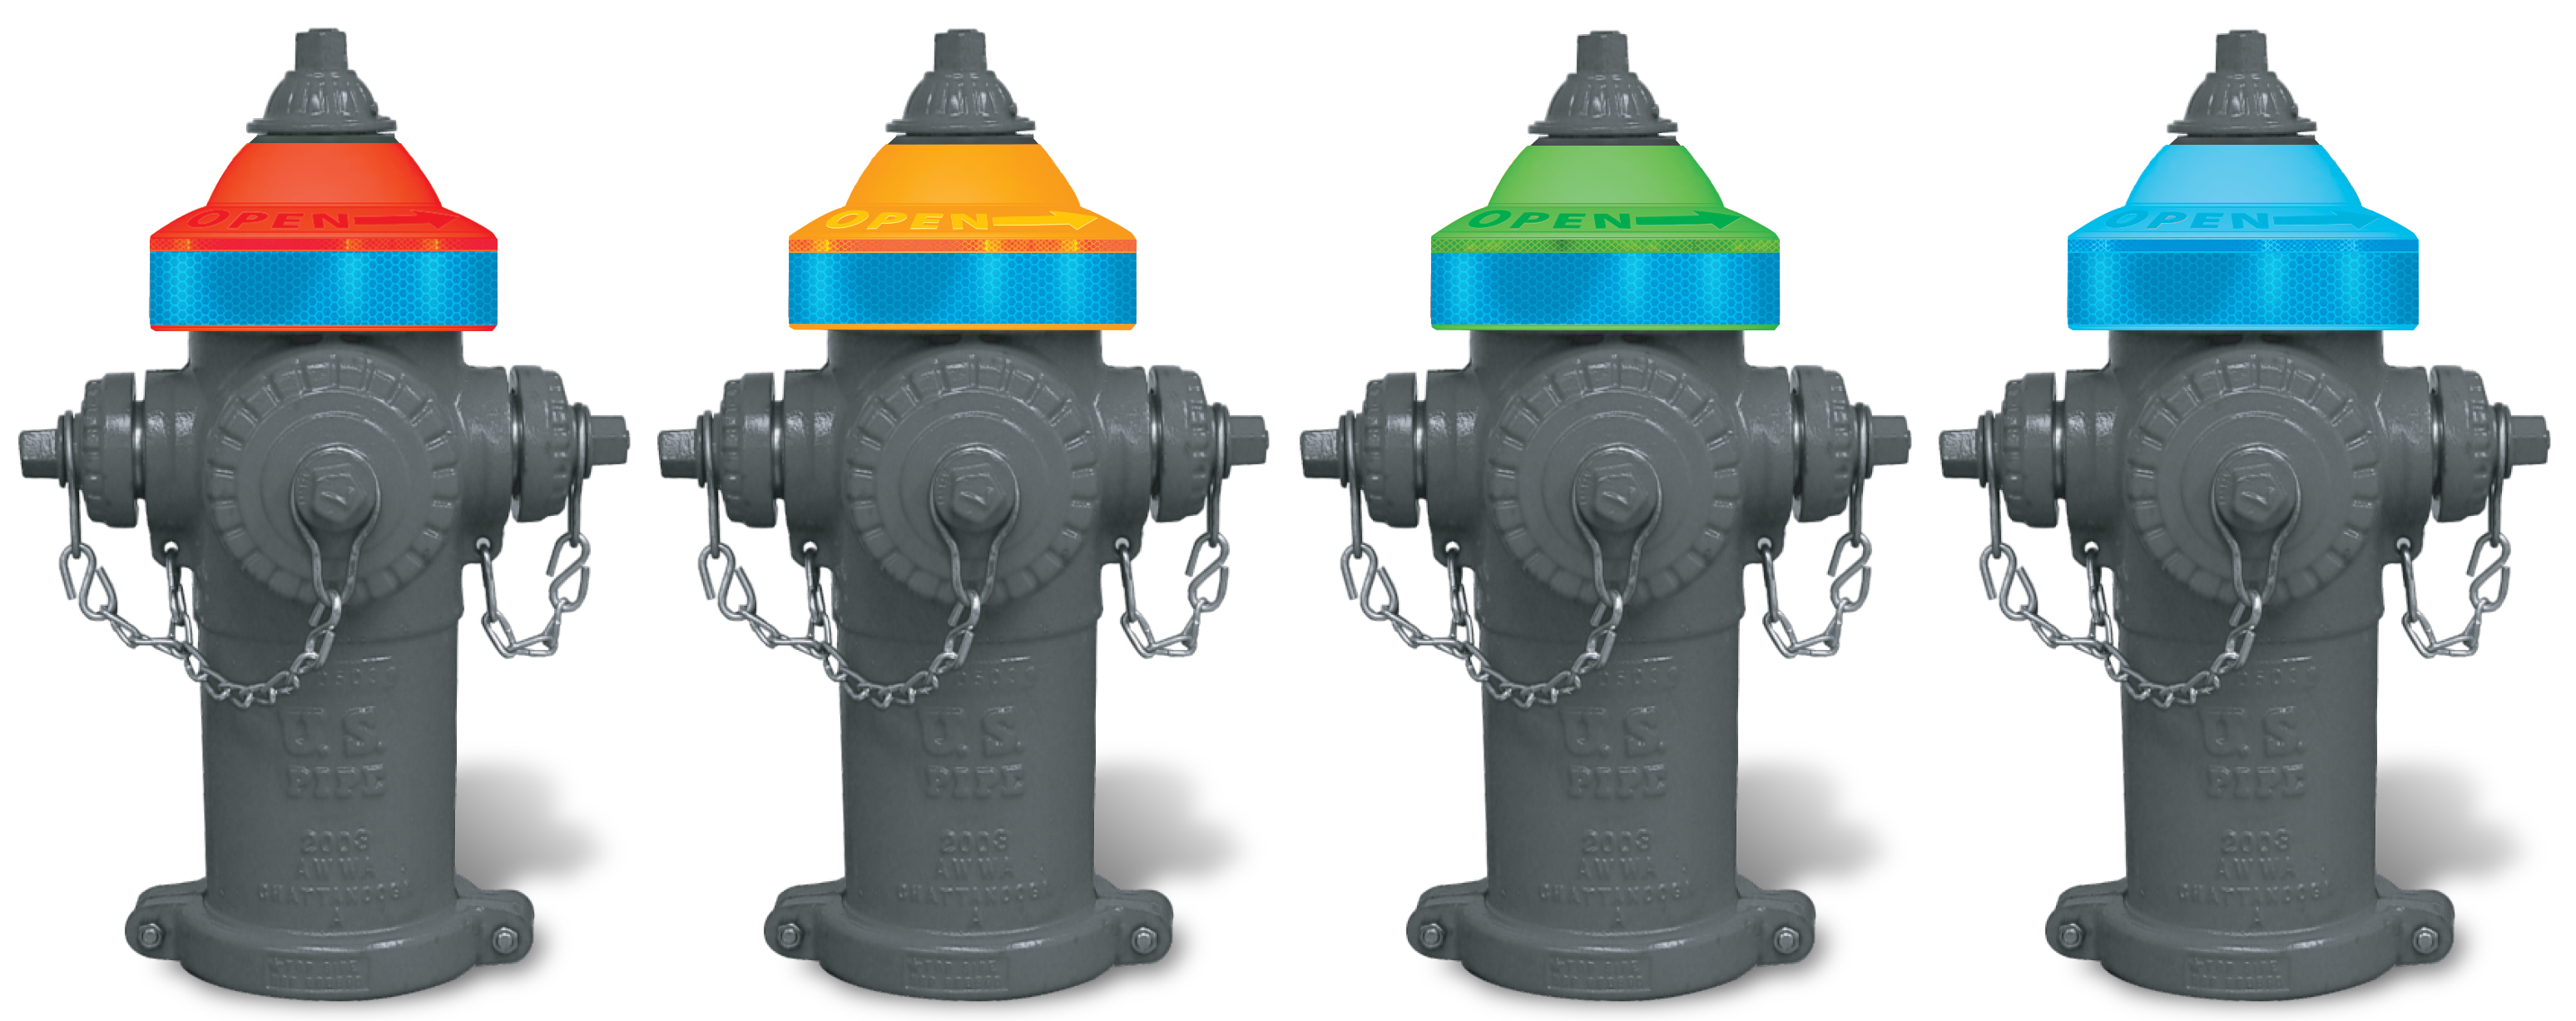 NFPA-291 Colors Fire Hydrants